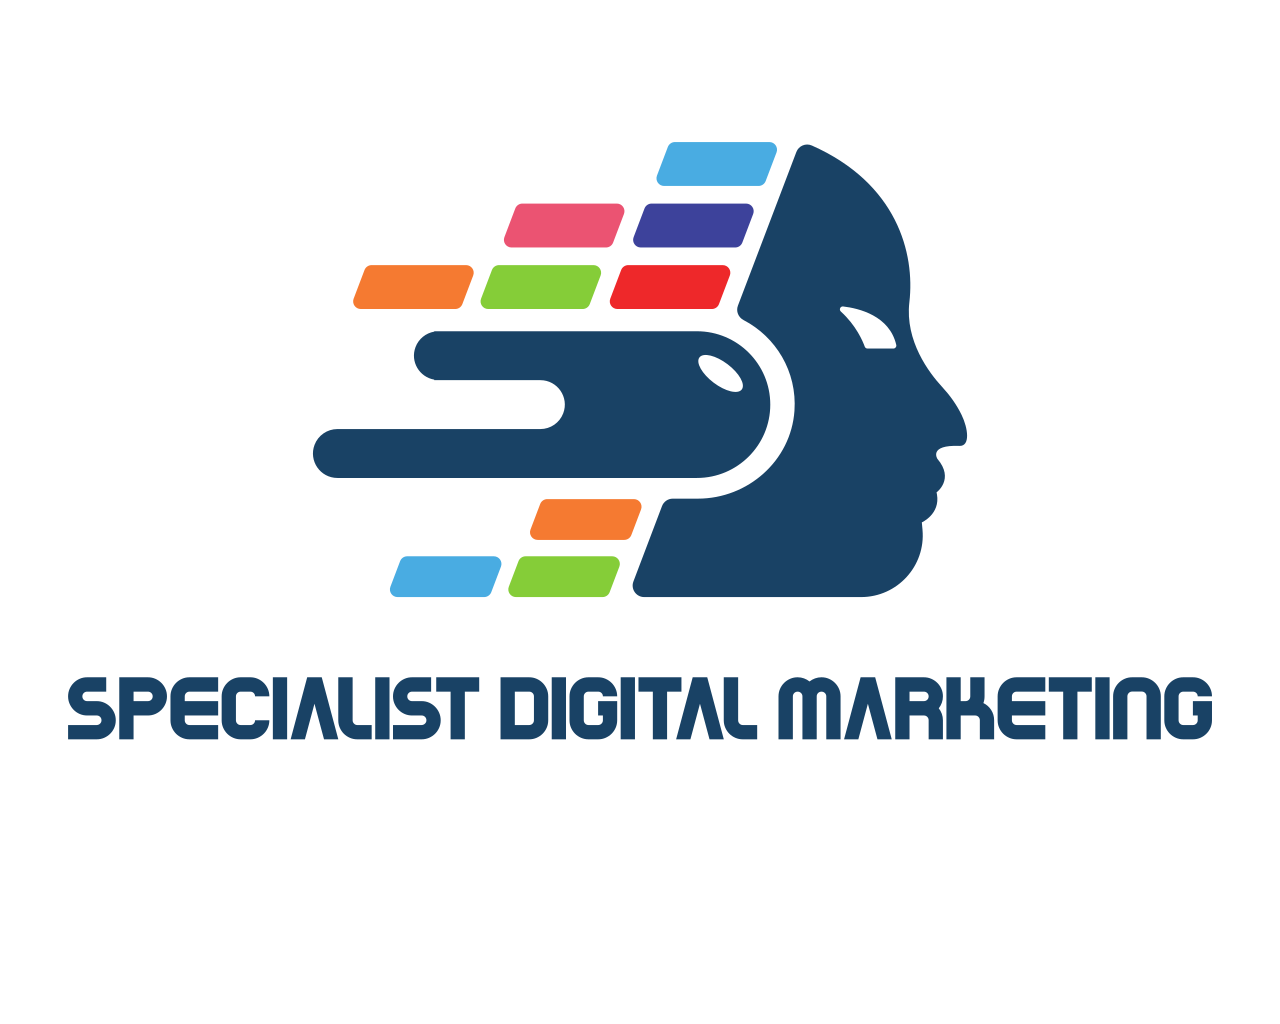 Specialist Digital Marketing